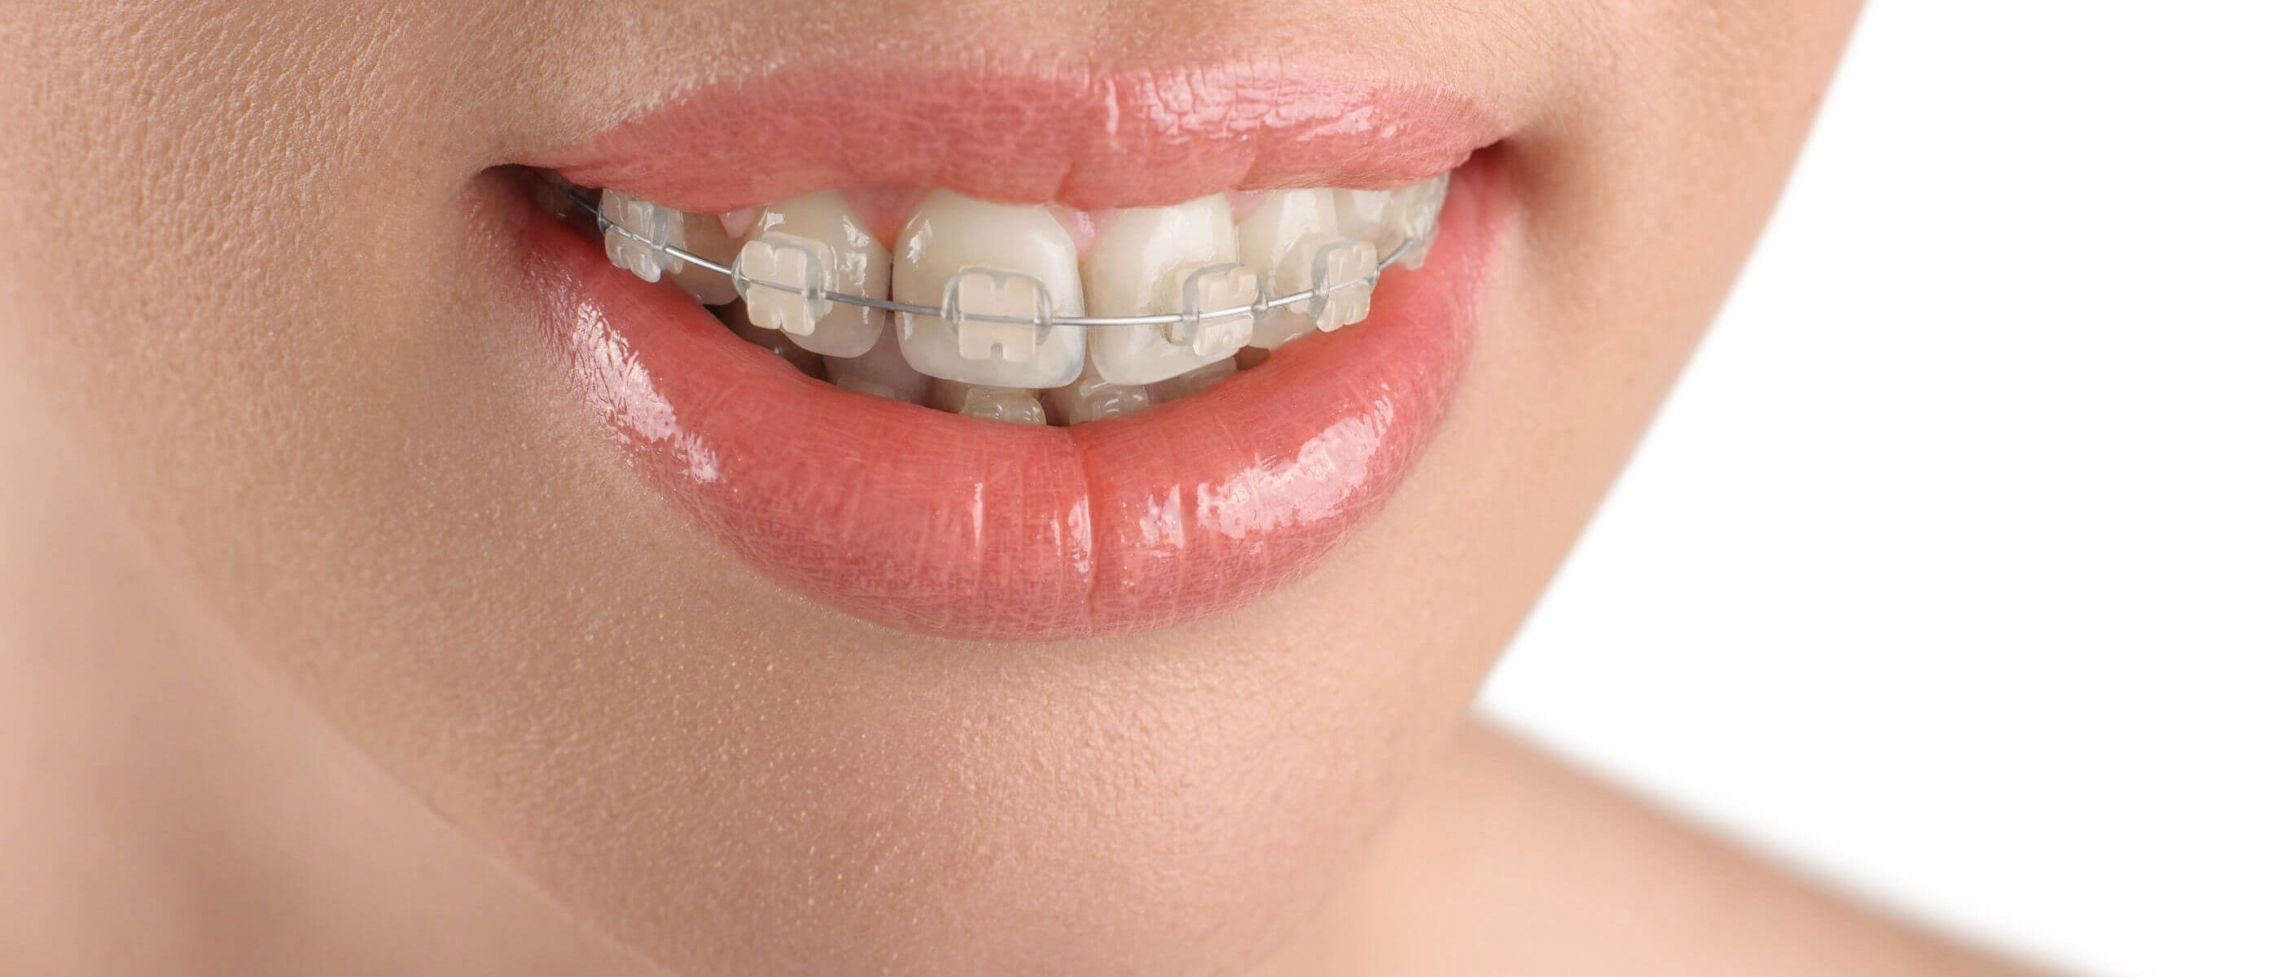 Considering ceramic fixed braces?